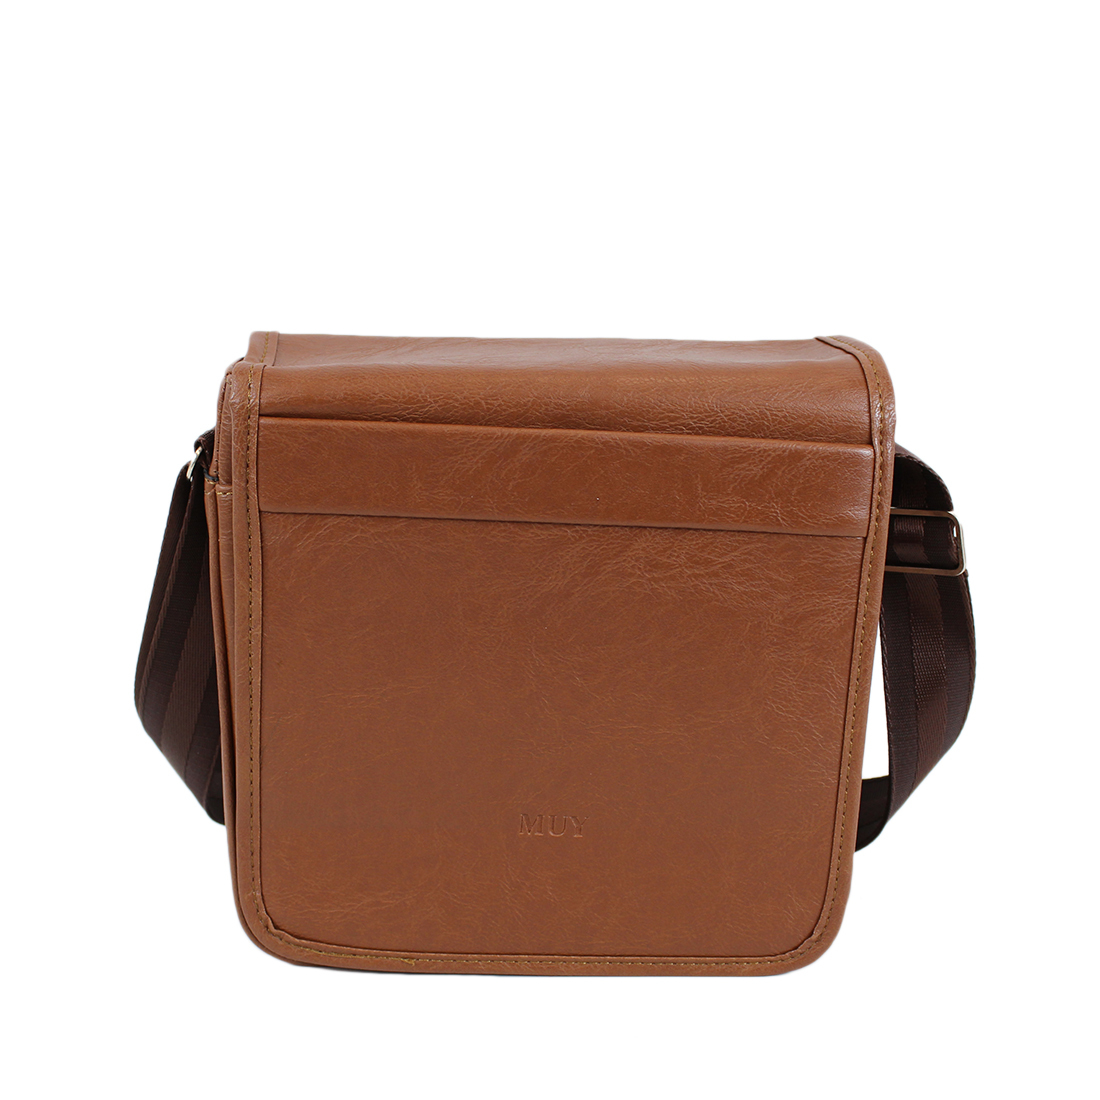 Plain real leather cross bag with pocket on front